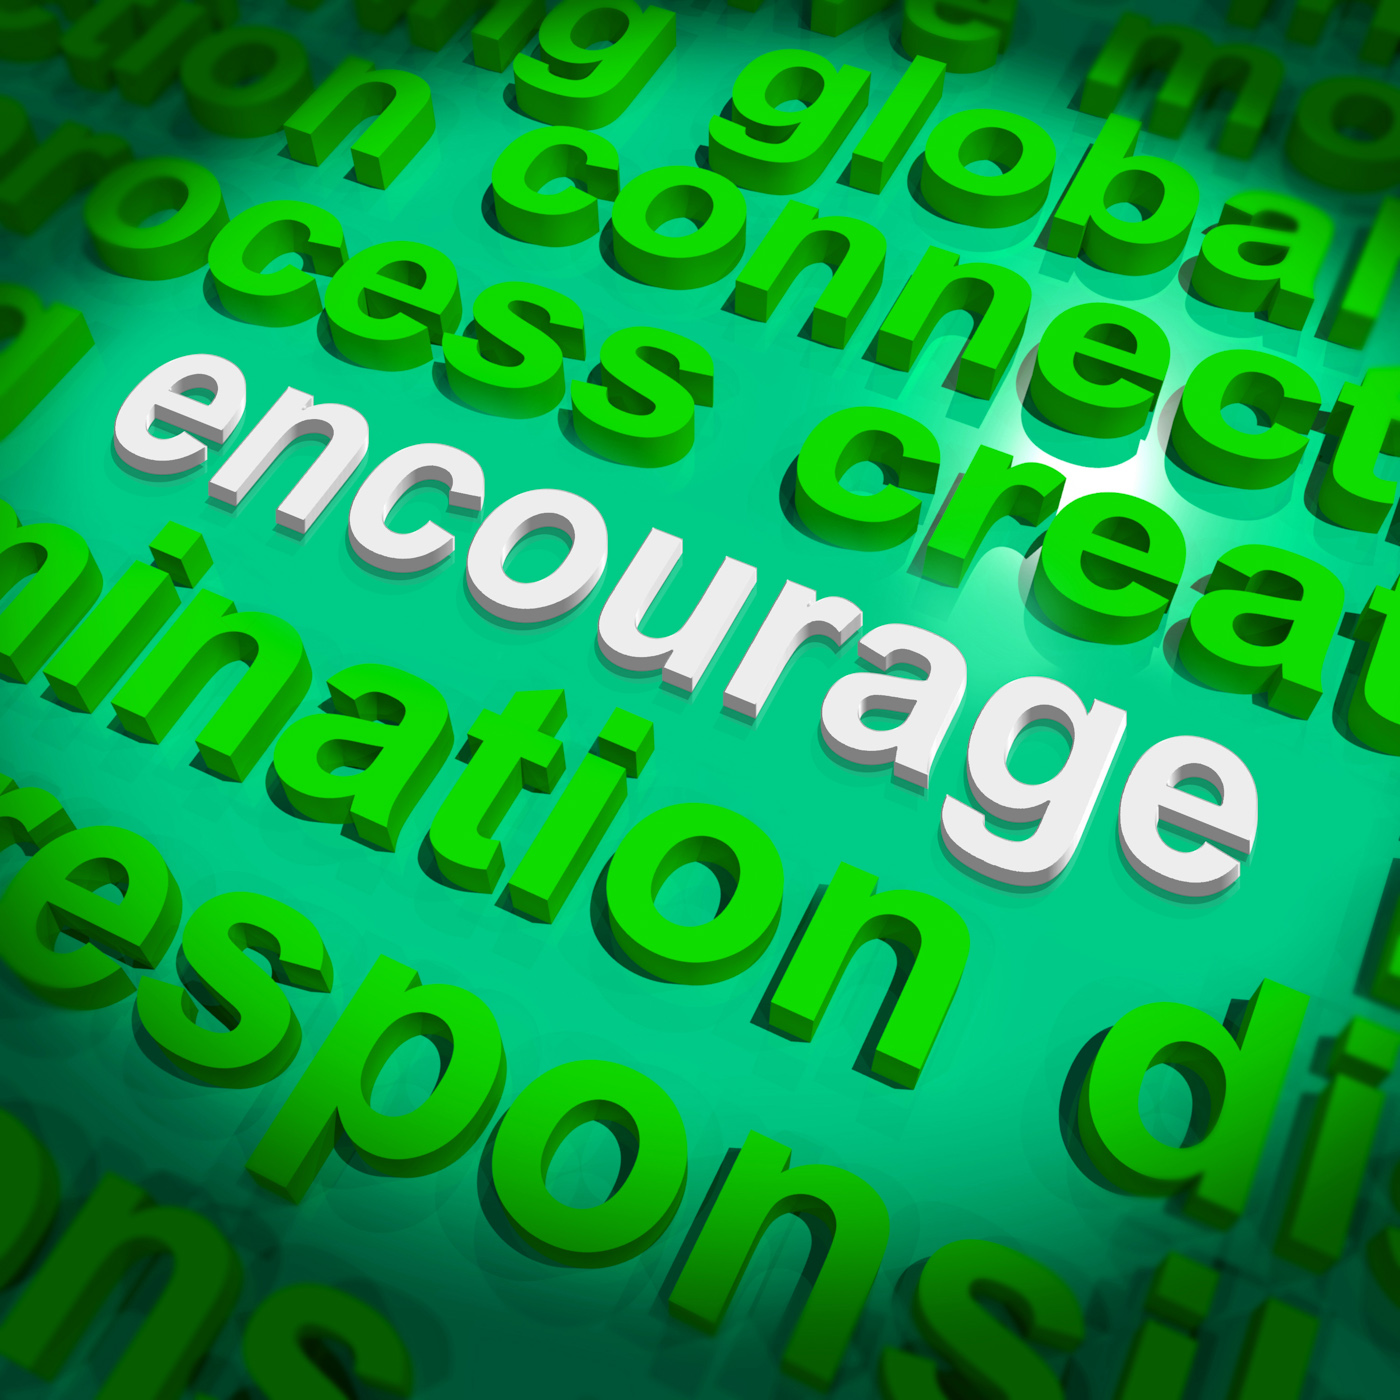 Encourage word cloud shows promote boost encouraged photo